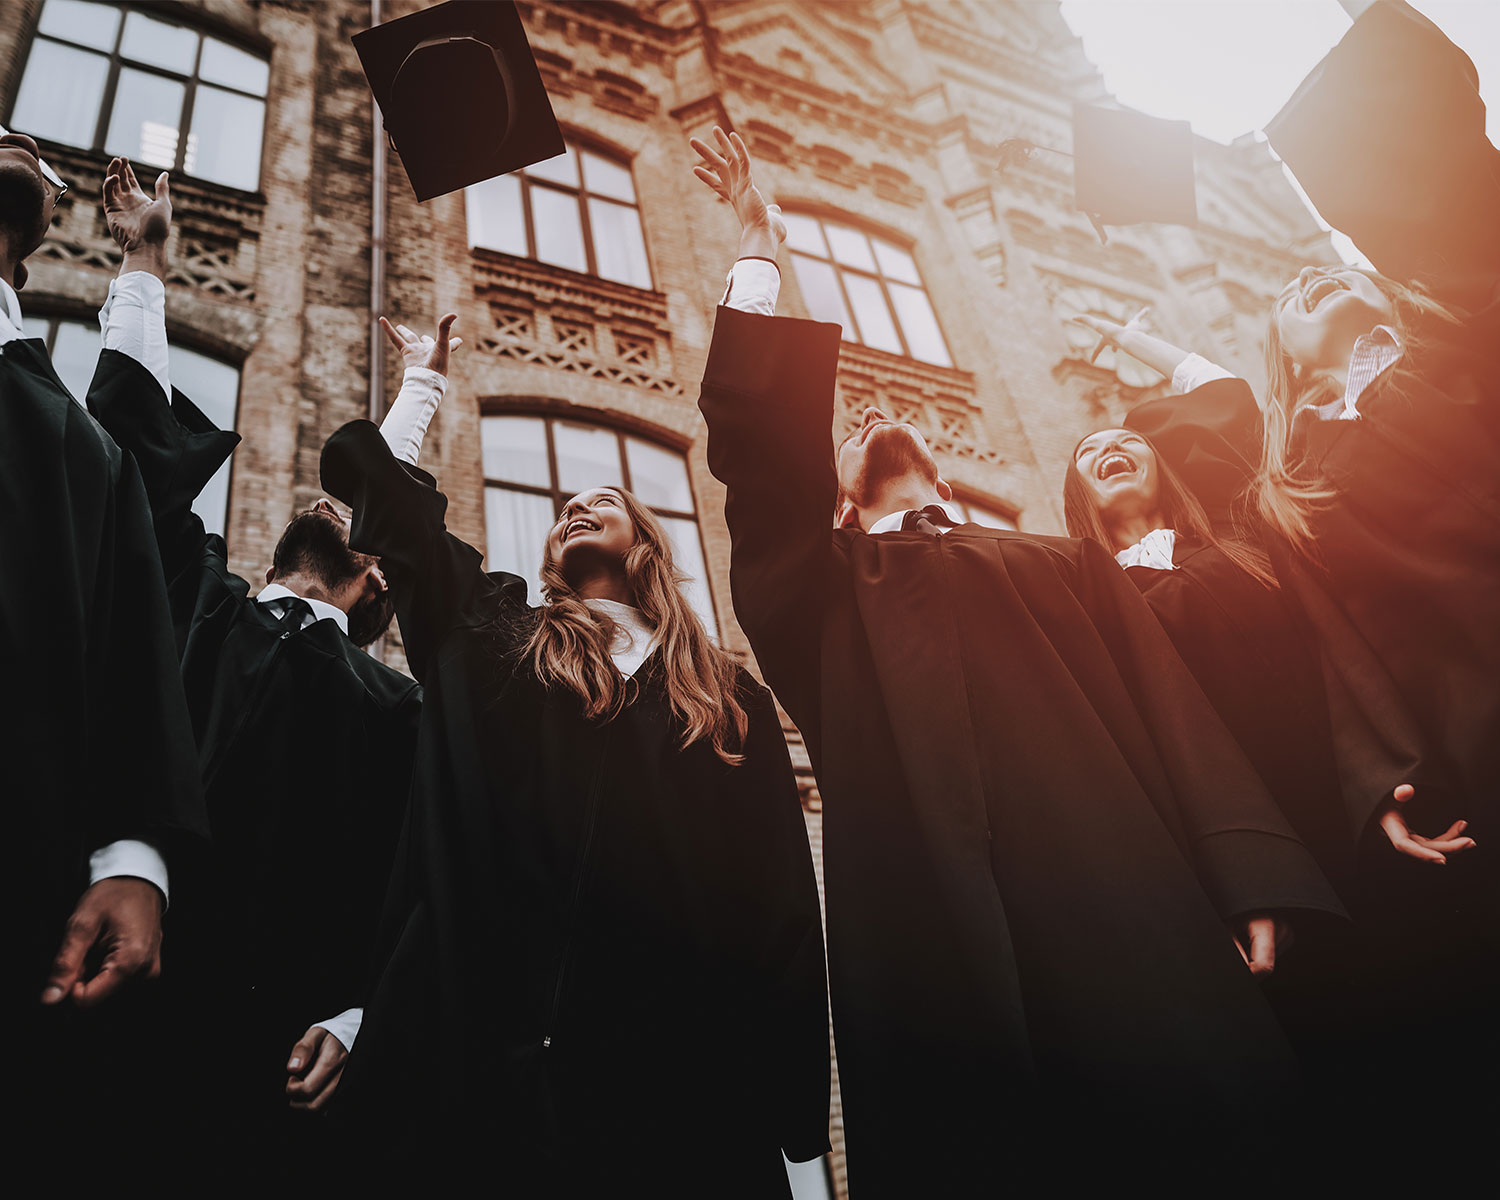 Students throwing graduation caps in the air outside building – paying overseas tuition fees. Our international payment services help you to save money when making payments for studying abroad and overseas education.